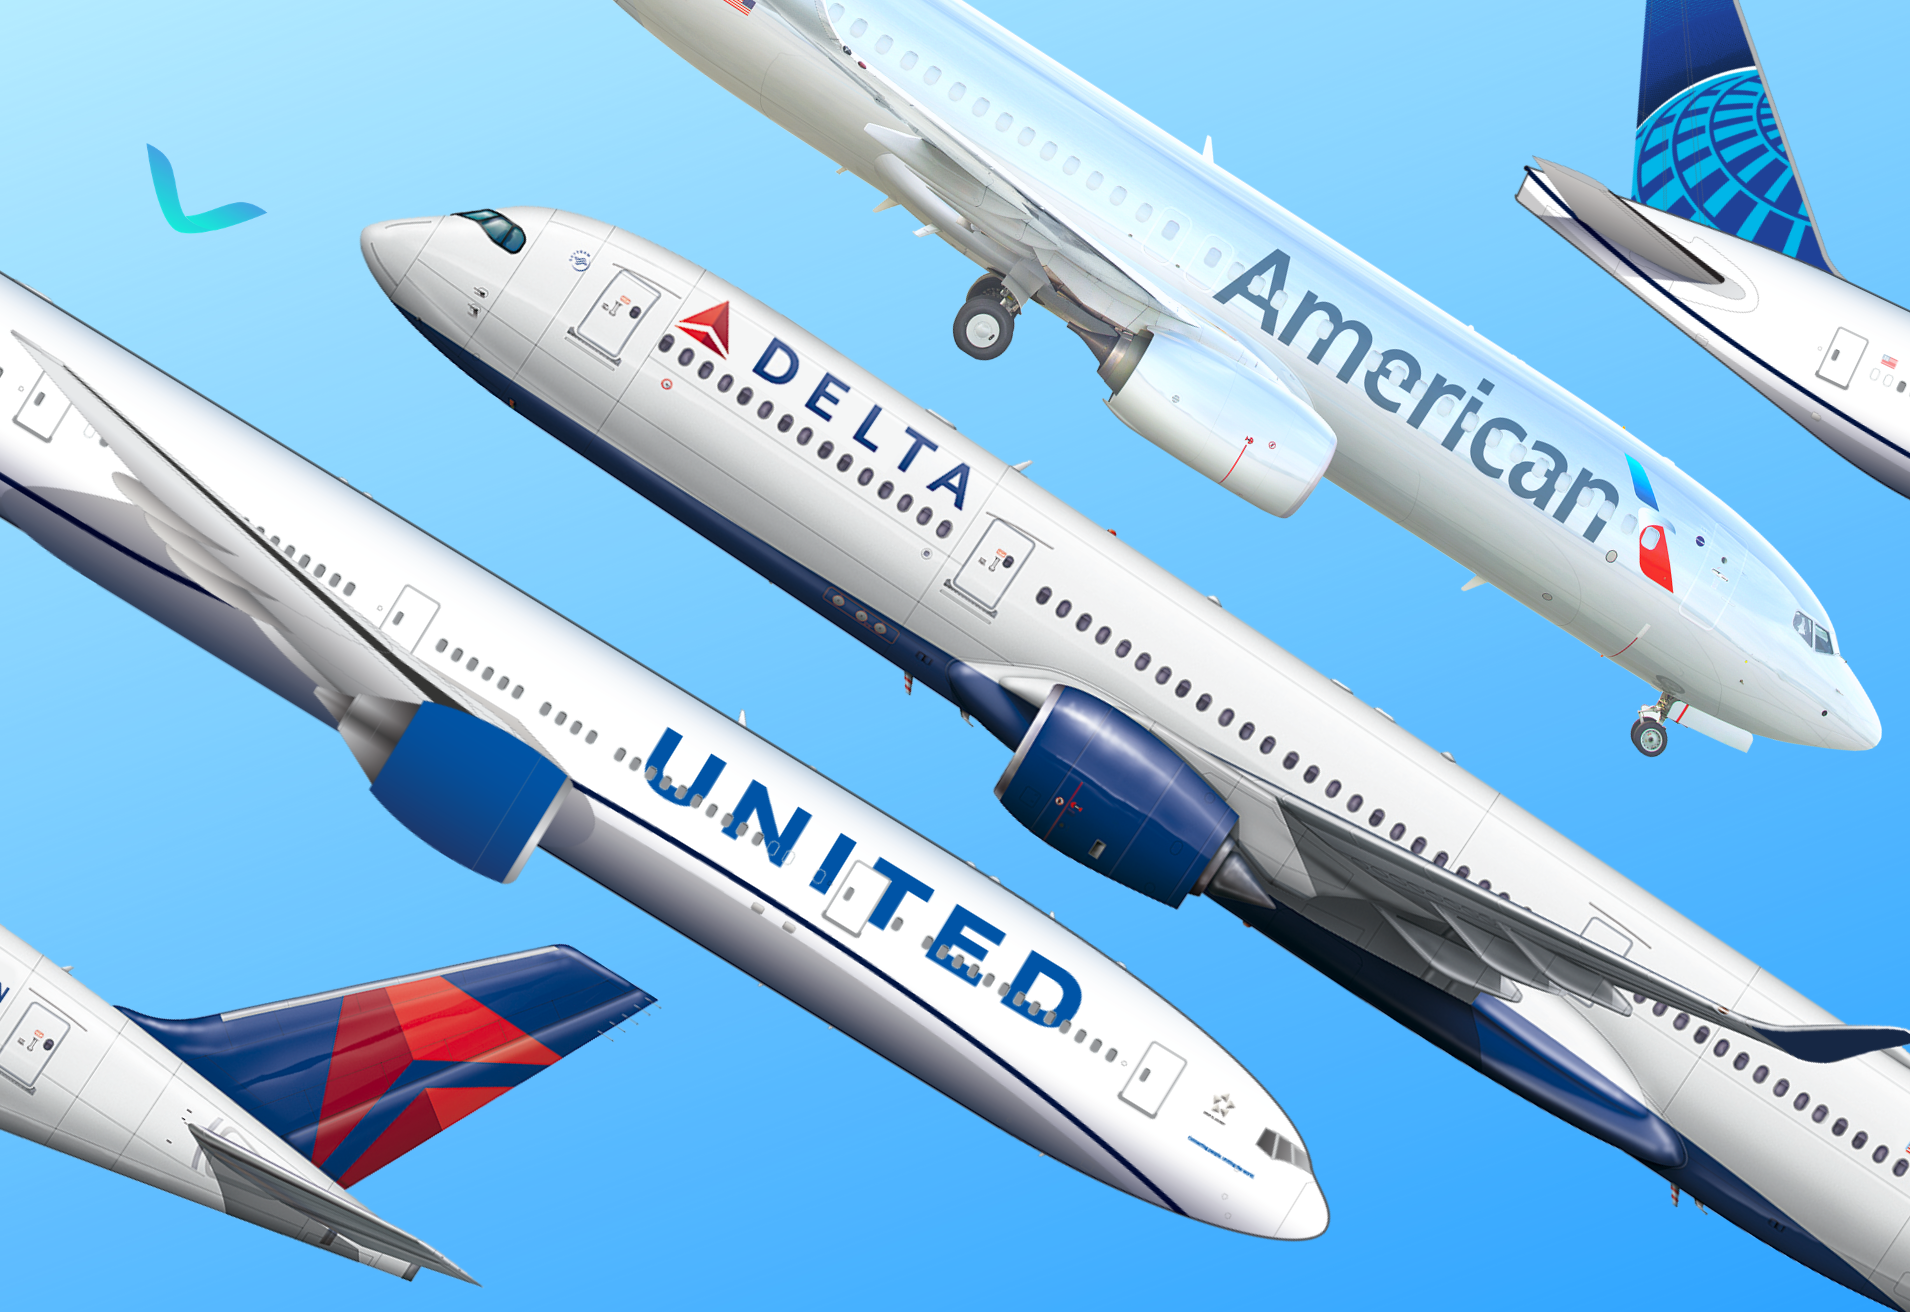 US 3 Major Airlines